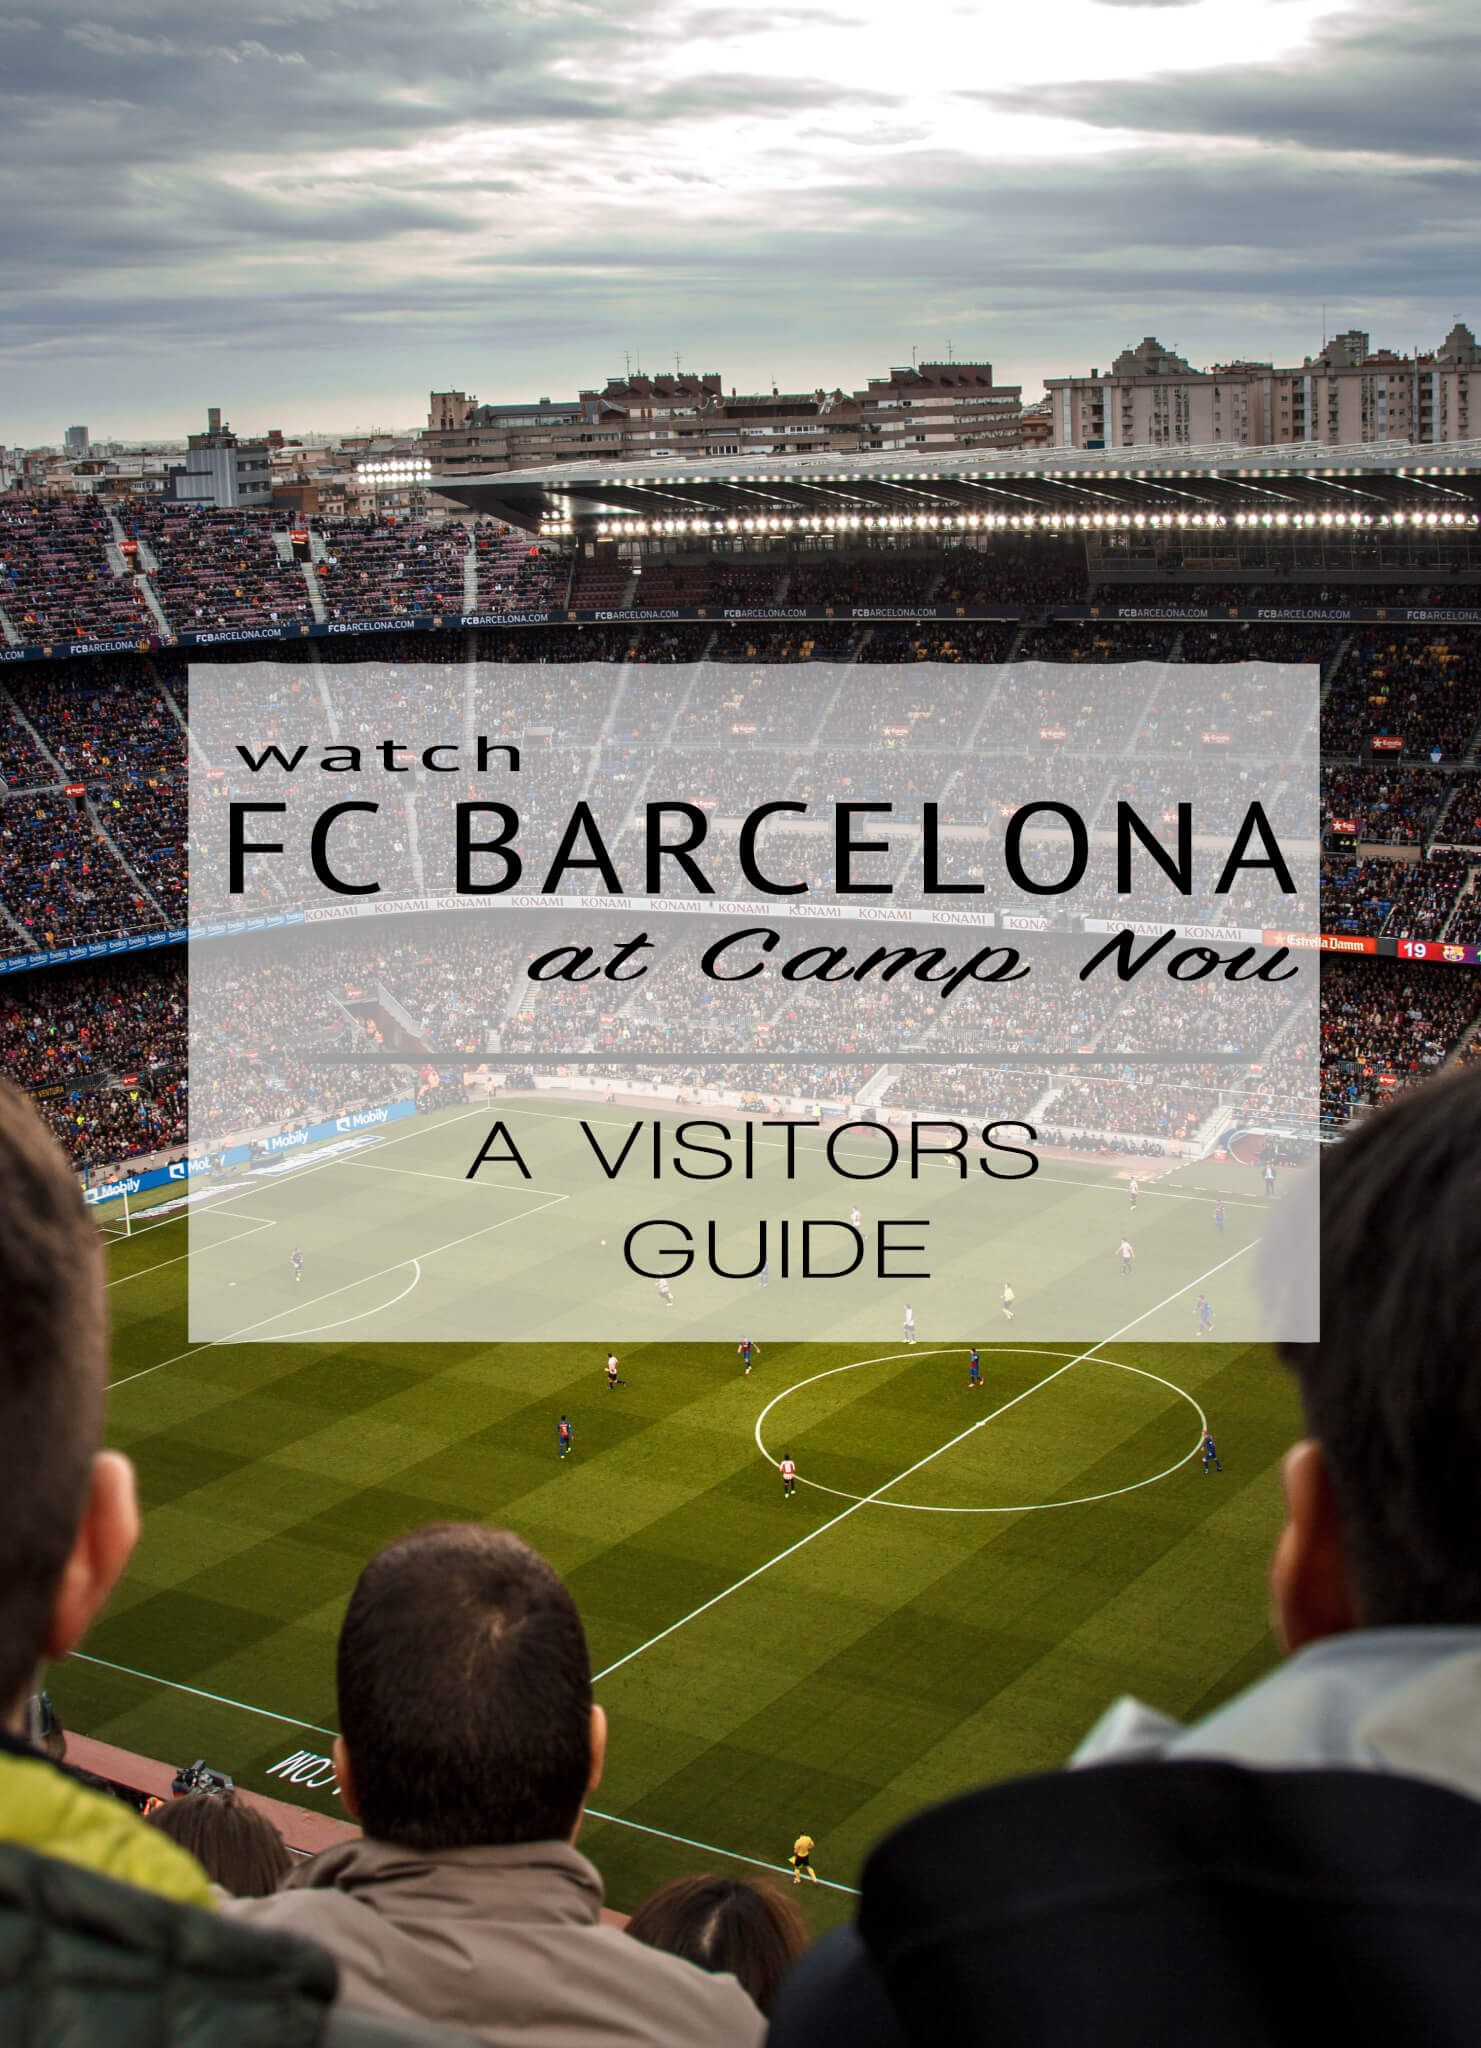 8d8c6ff64 Watch one of the world's best football (soccer) teams play at Camp Nou. A  complete visitors guide, including tips for attending an FC Barcelona game.